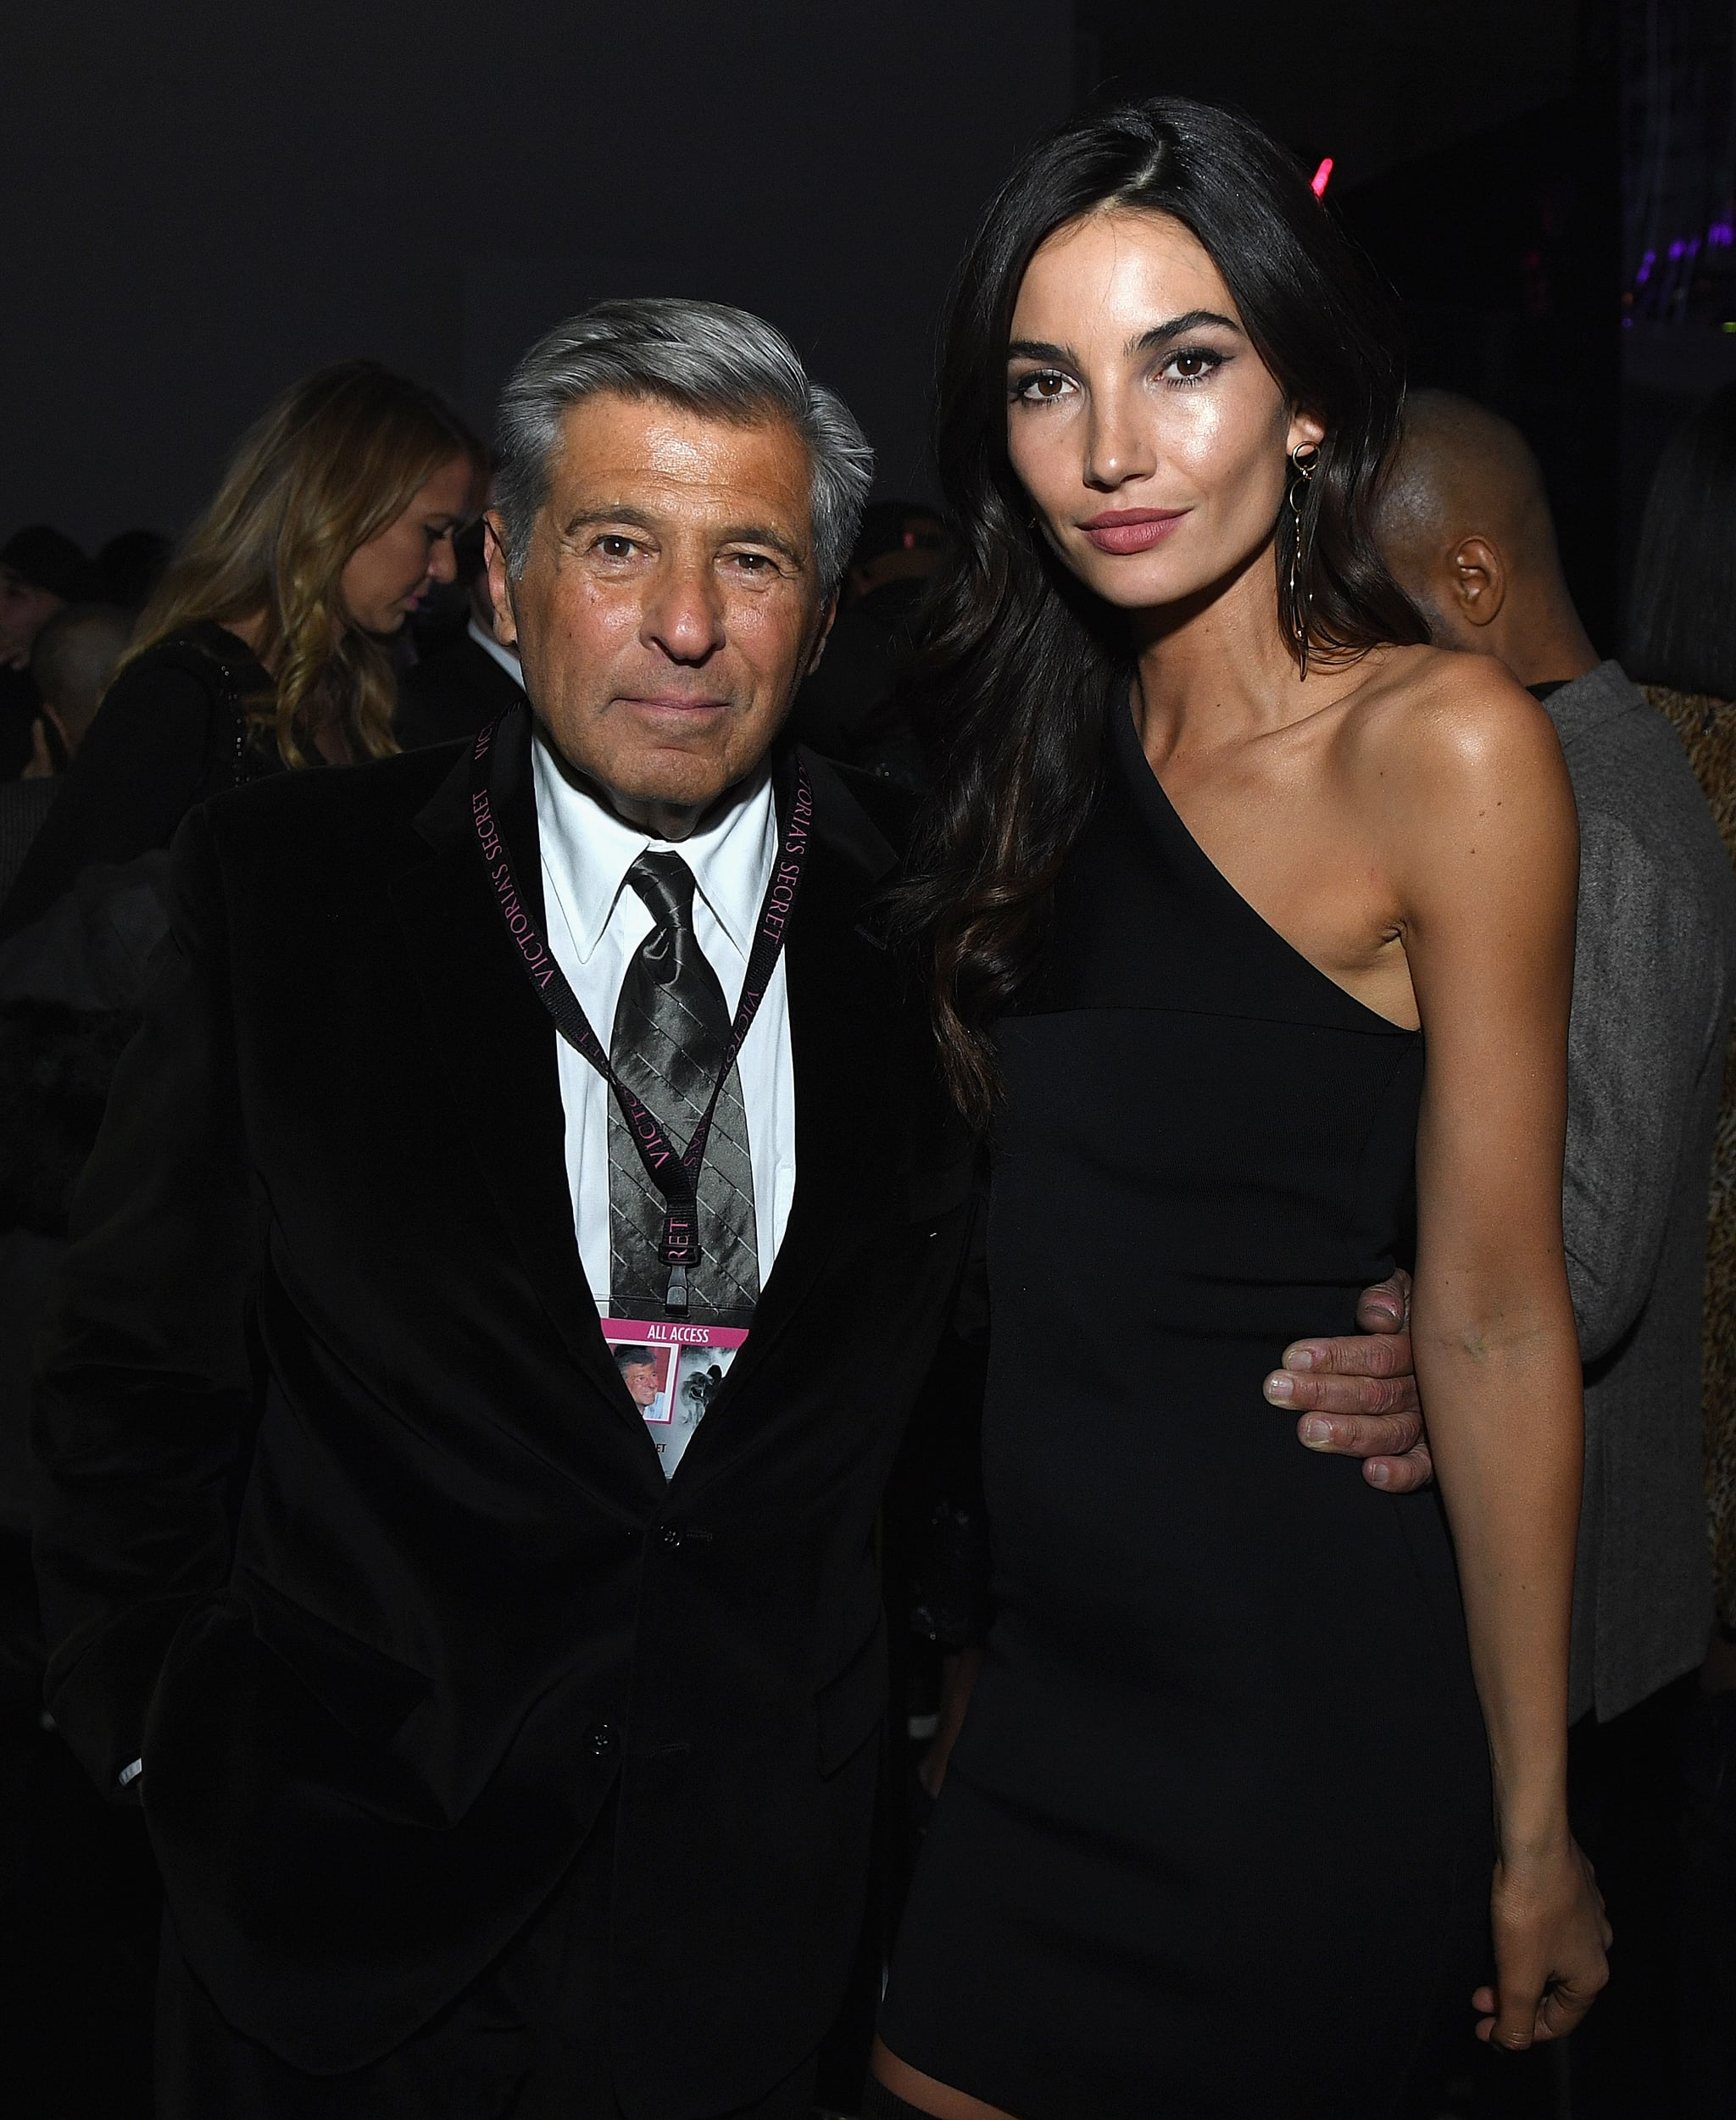 PARIS, FRANCE - NOVEMBER 30: Edward Razek and Lily Aldridge attend the Victoria's Secret After Party on November 30, 2016 in Paris, France.  (Photo by Dimitrios Kambouris/Getty Images for Victoria's Secret)